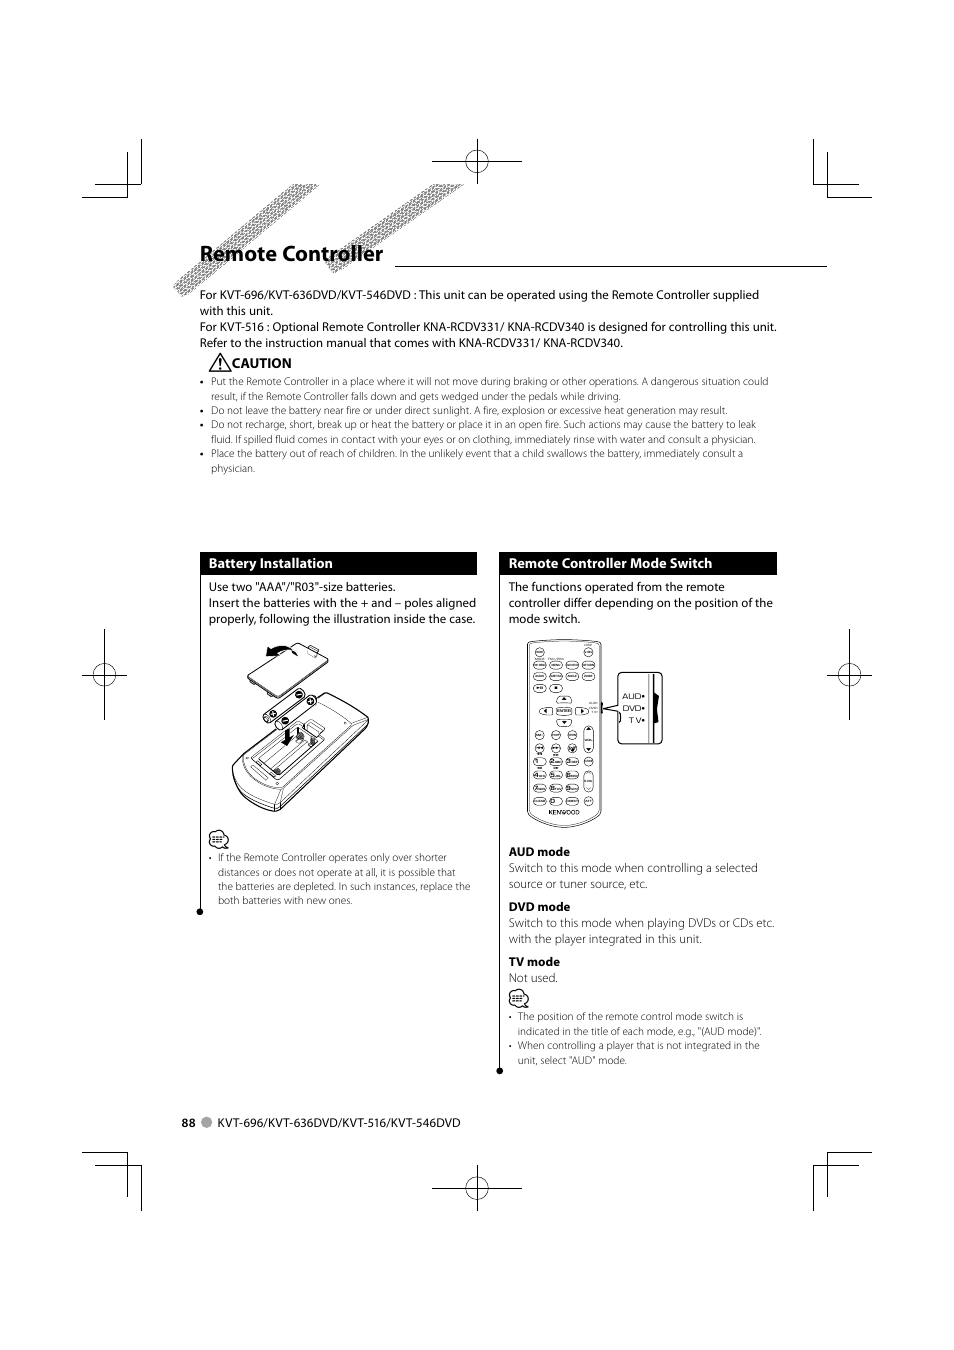 Kenwood Kvt 516 Remote Wiring Diagrams Kna G610 Diagram Controller Caution Battery Installation 696 Wire Harness